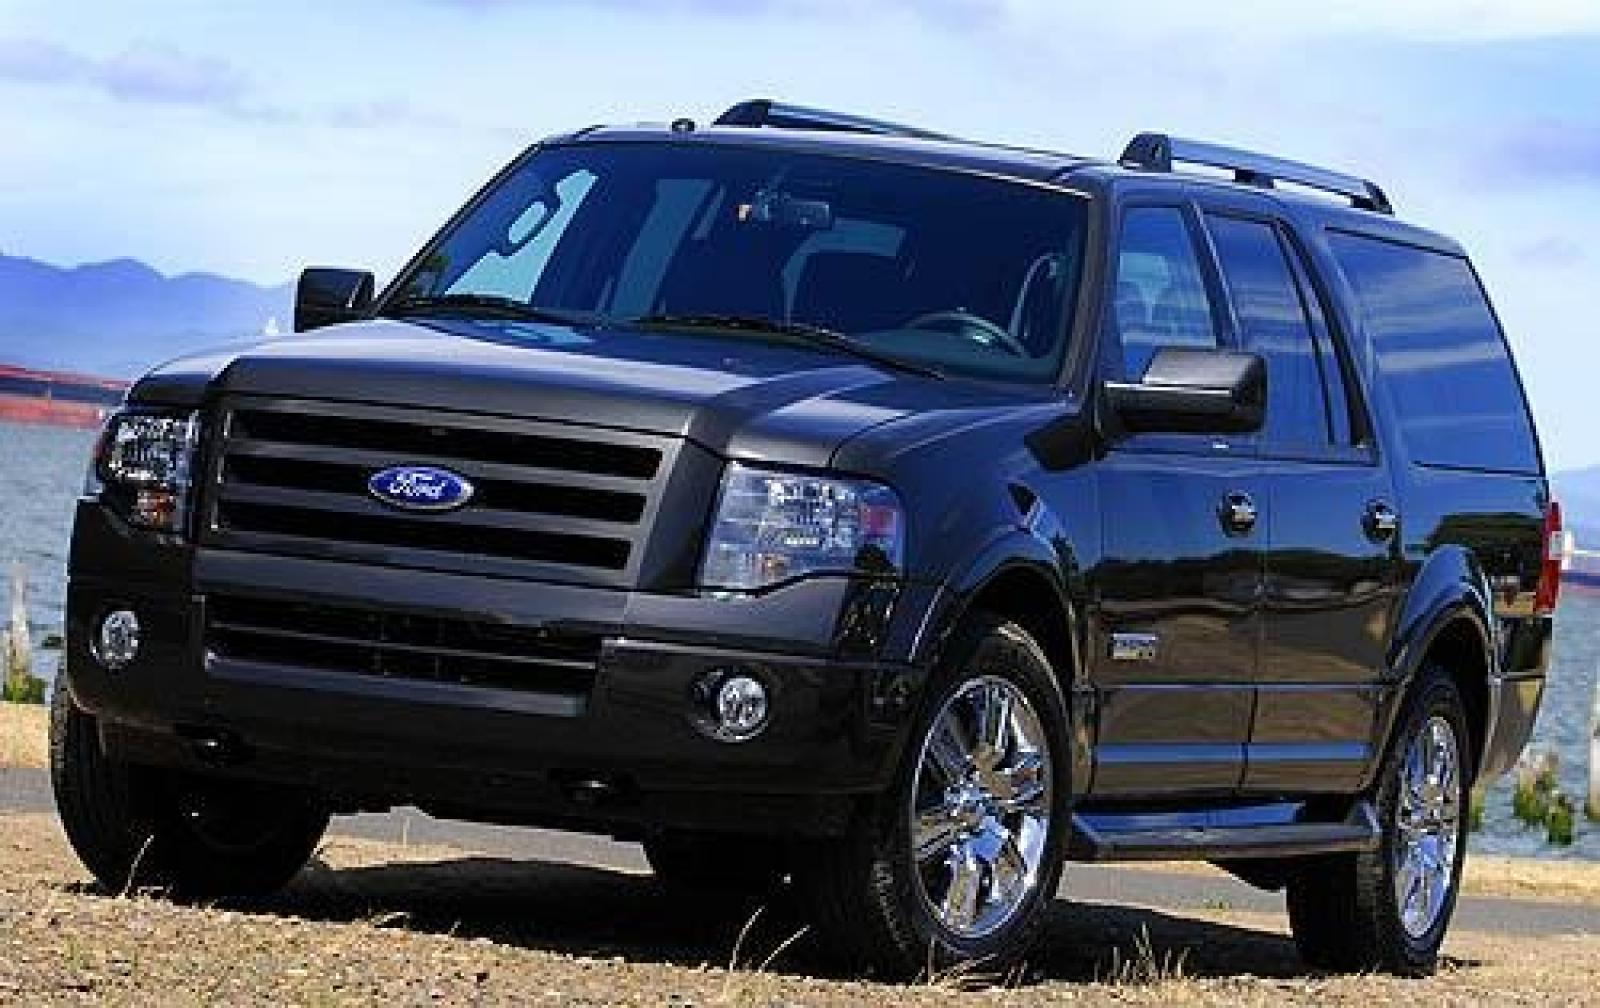 800 1024 1280 1600 origin 2012 ford expedition